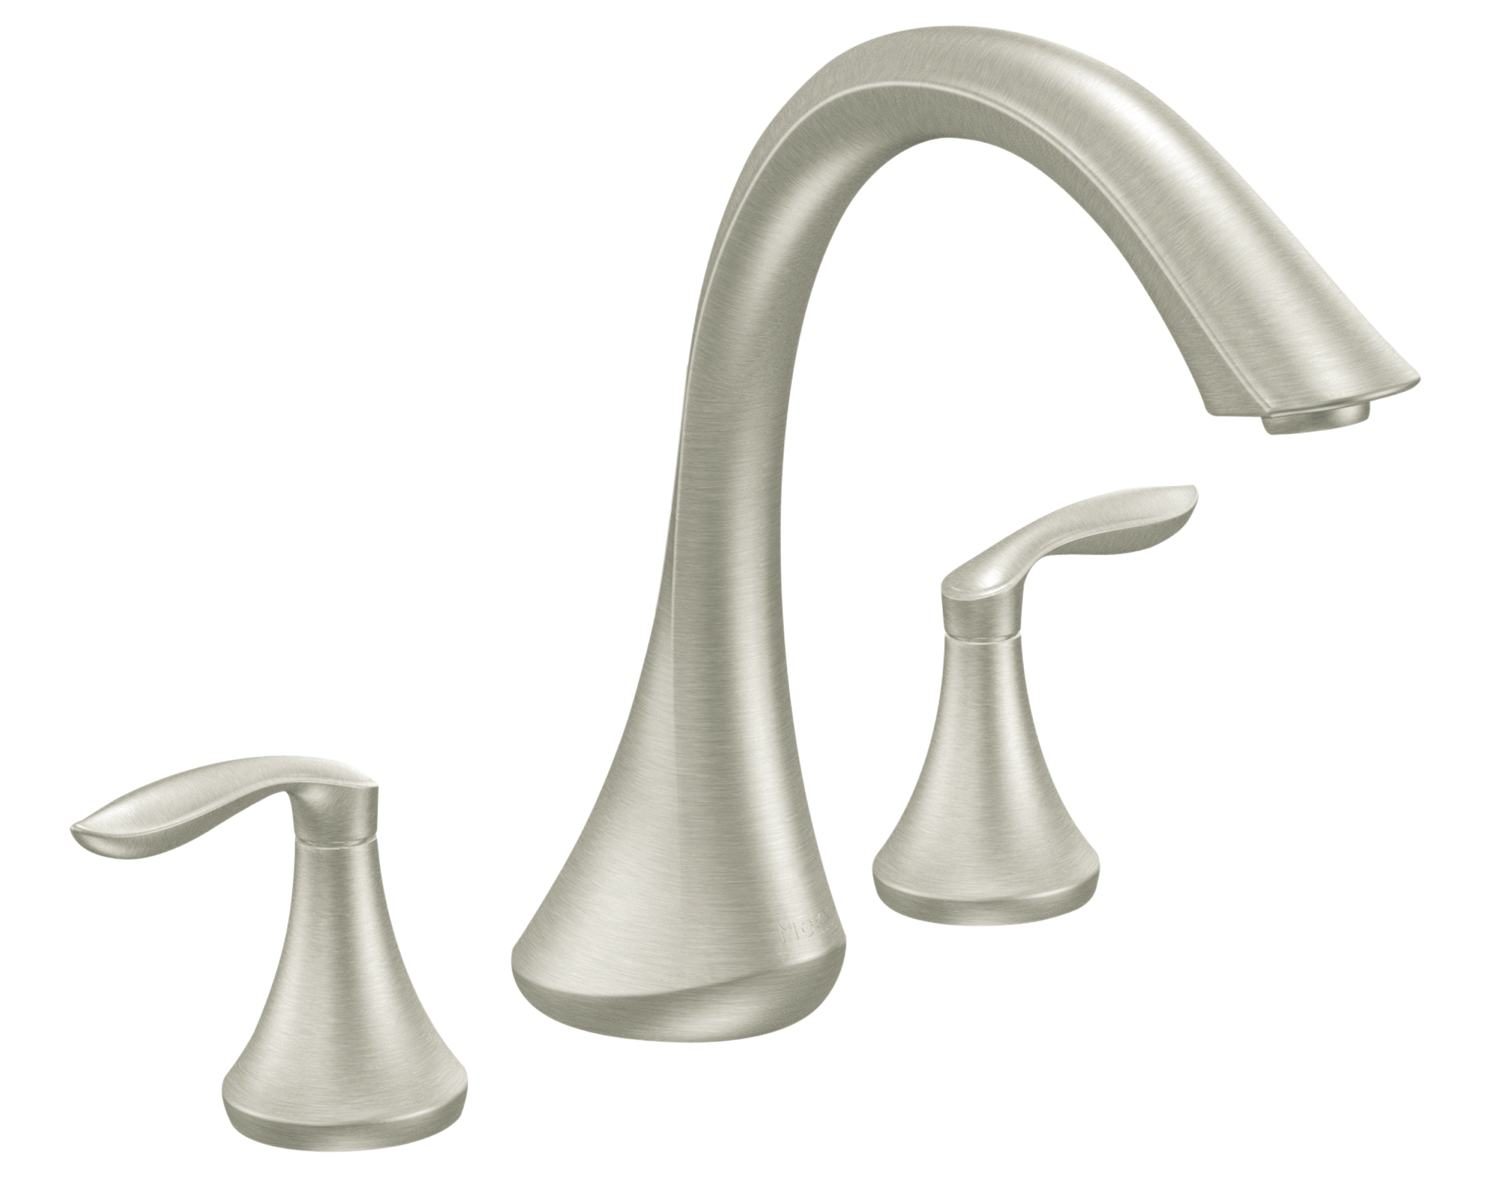 Moen Eva Two-Handle High-Arc Roman Tub Faucet without Valve ...